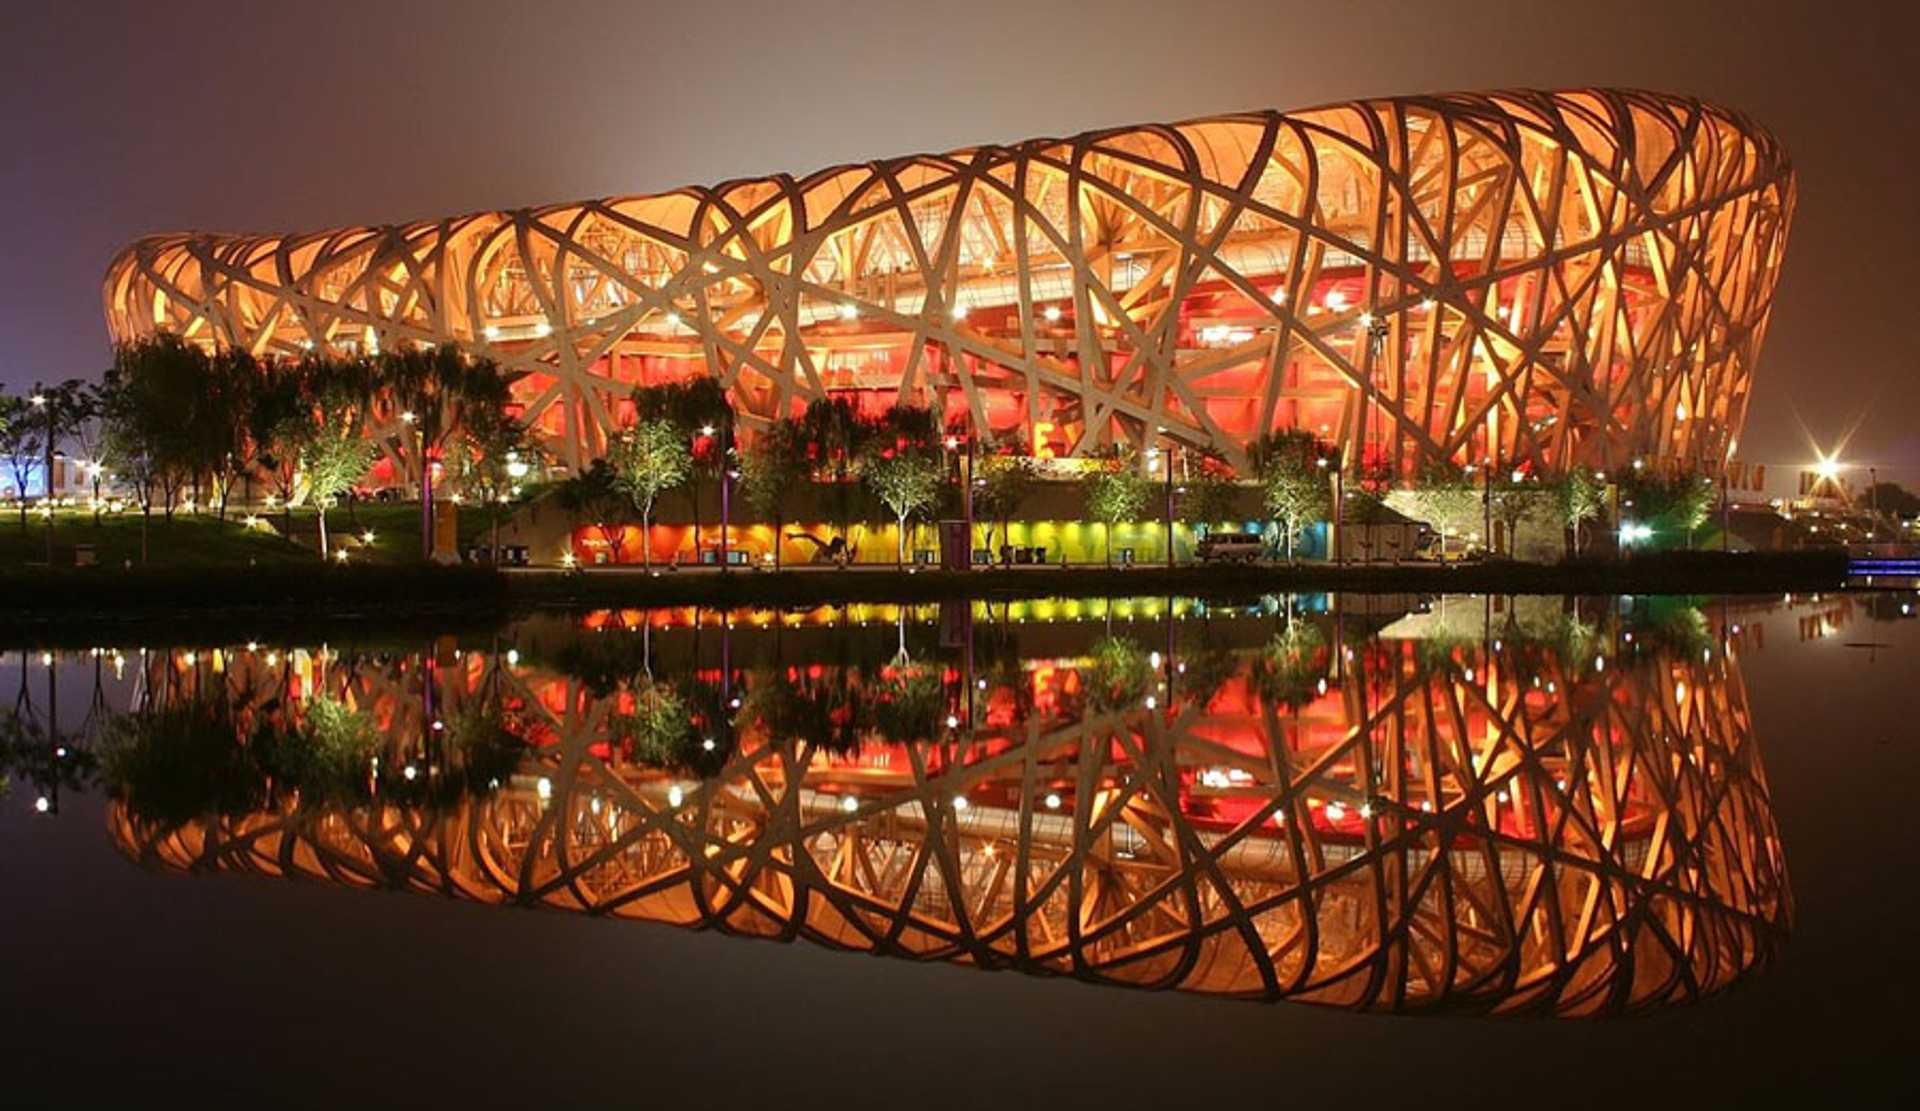 8 - You should consider a night walk in the Olympic Park